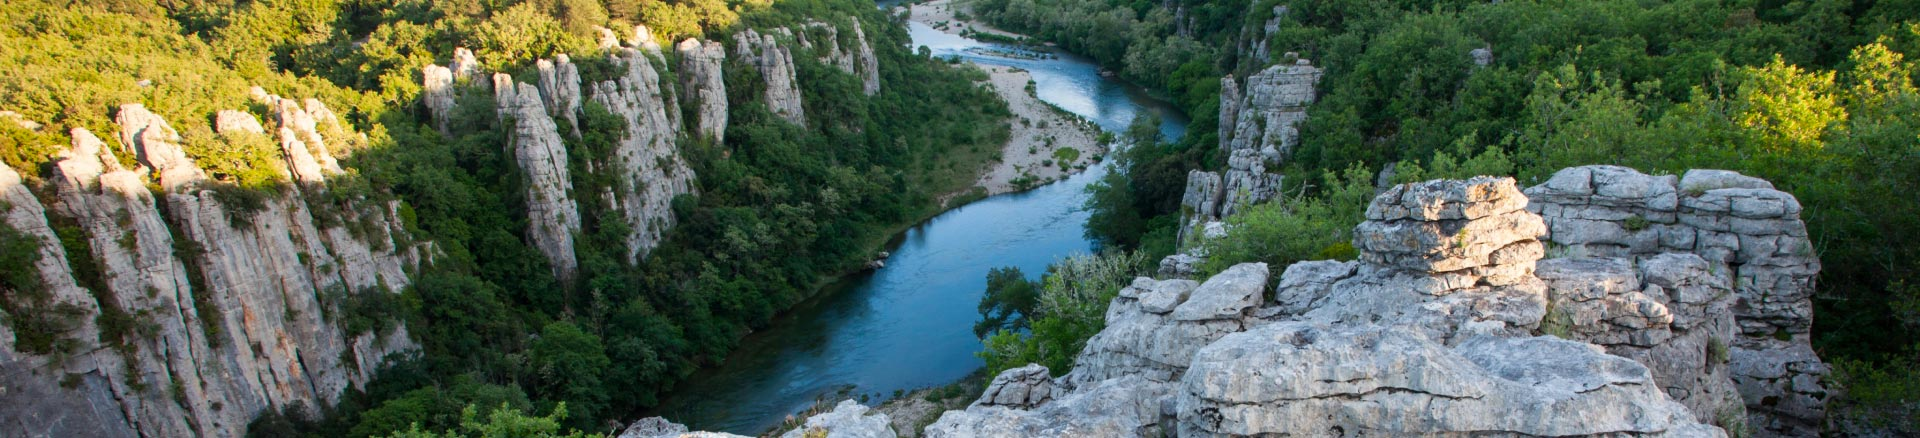 Campings Languedoc-Roussillon